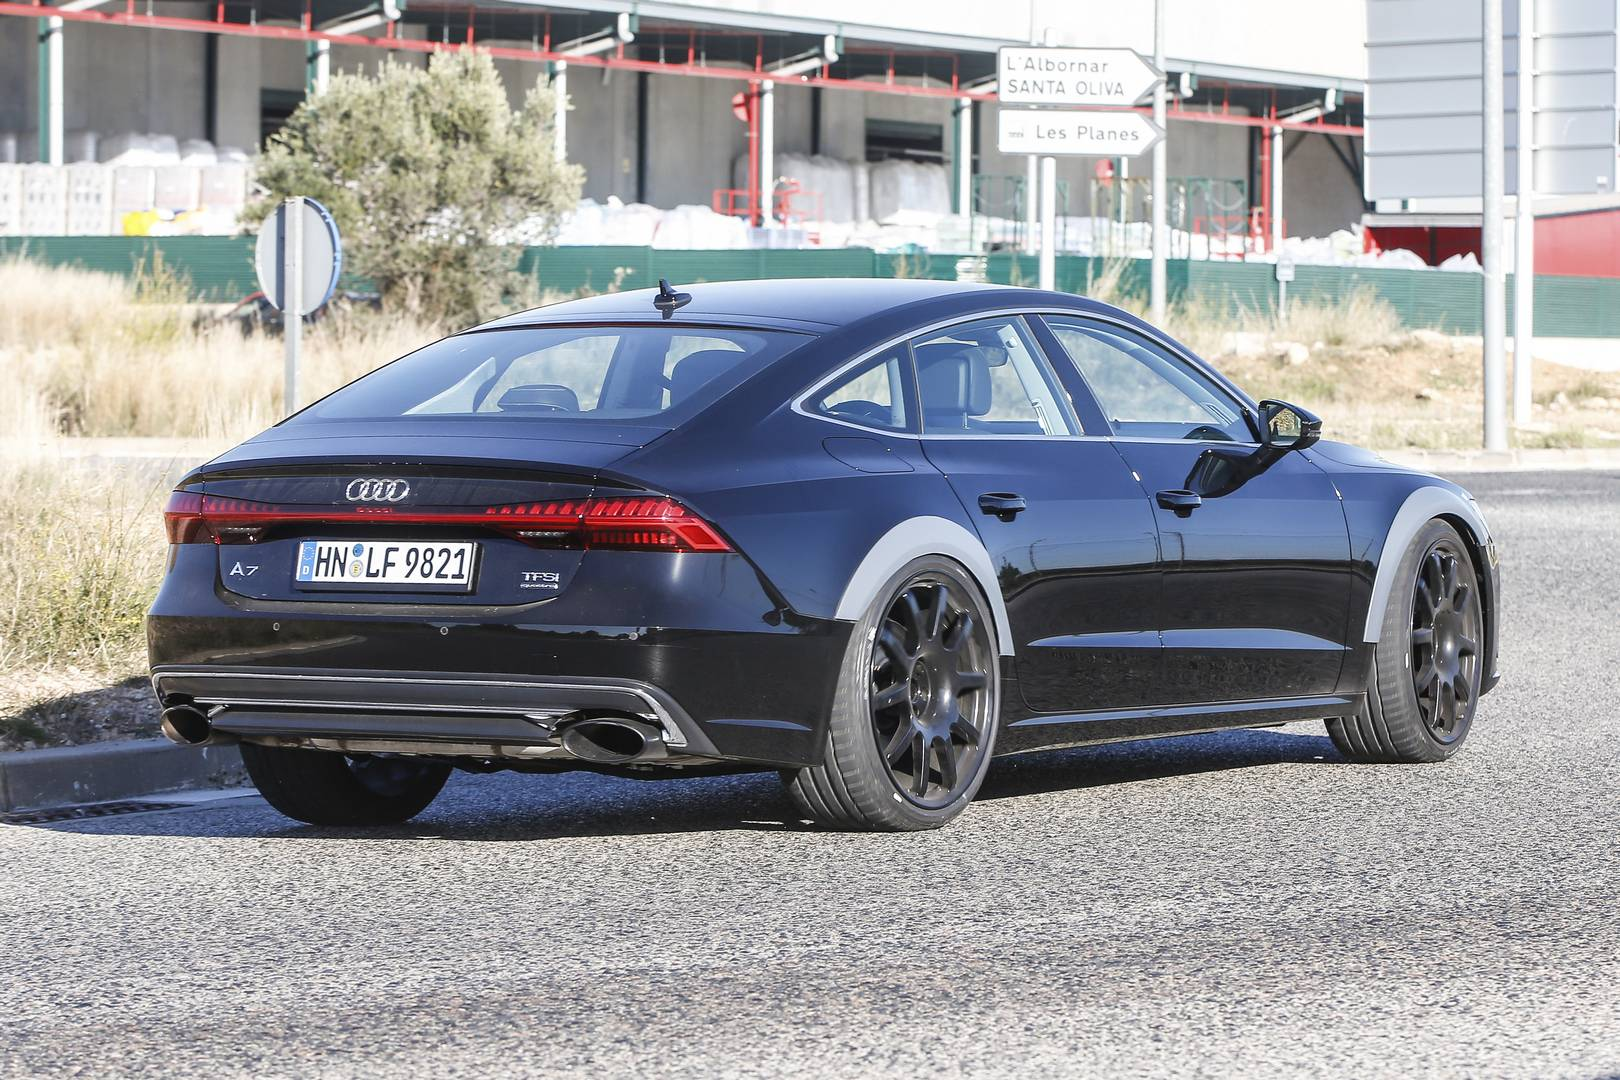 2019 audi rs7 test mule first spy shots gtspirit. Black Bedroom Furniture Sets. Home Design Ideas